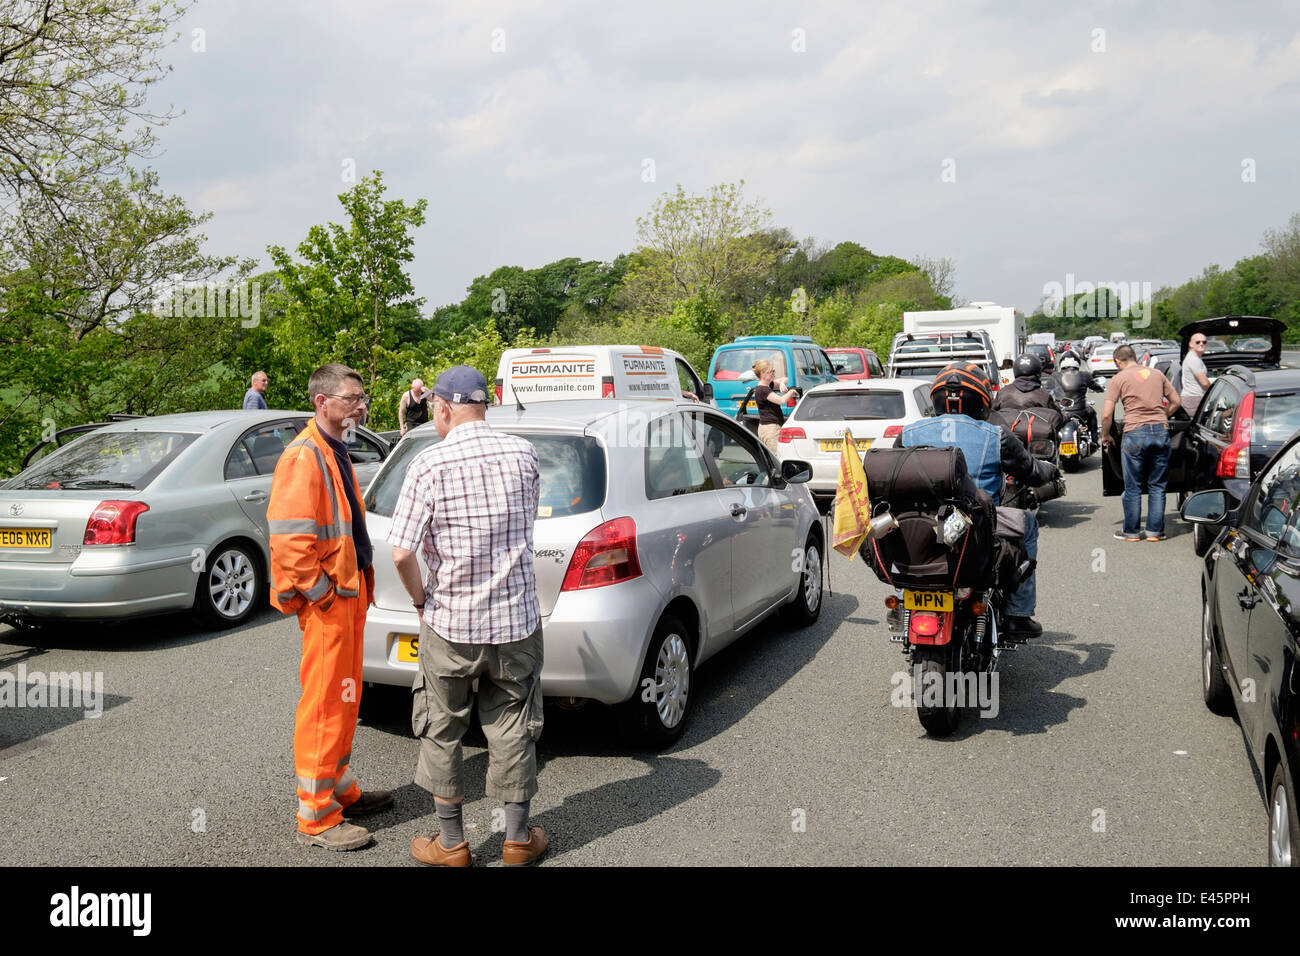 Motorbikes driving riding through stationary vehicles in a traffic jam with people standing on carriageway on M6 - Stock Image